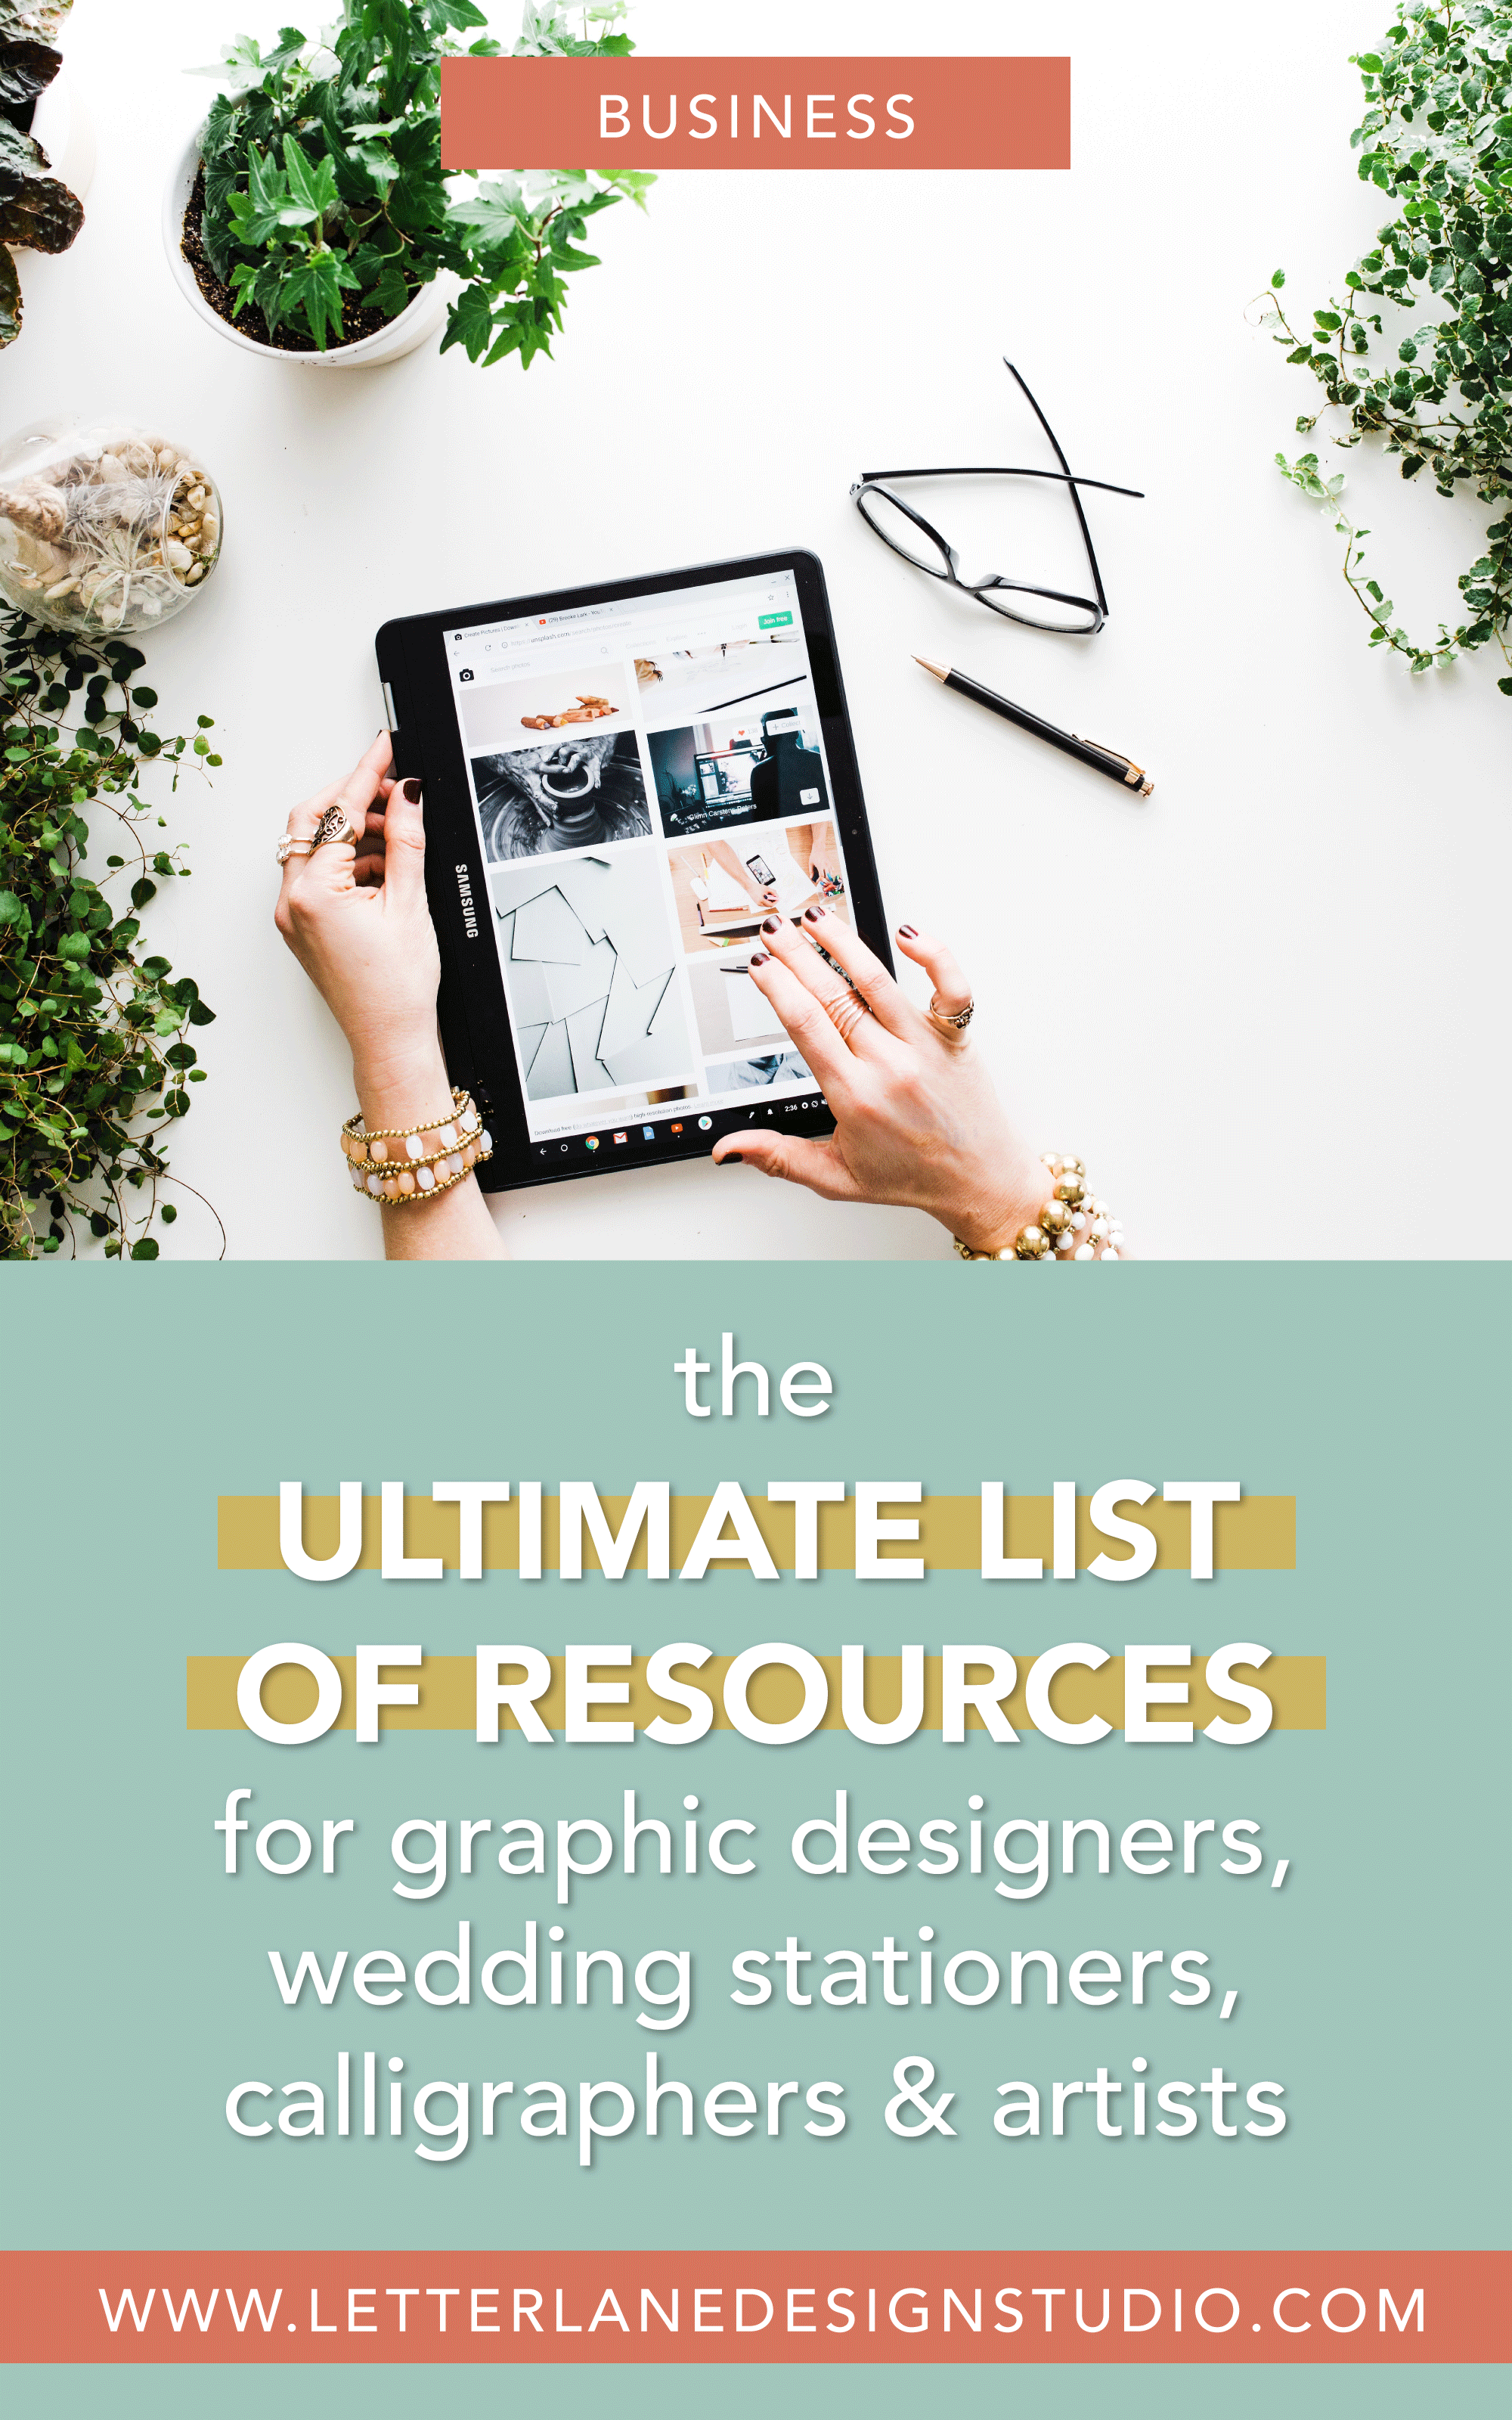 Ultimate-List-of-Resources-Pinterest-Image.png